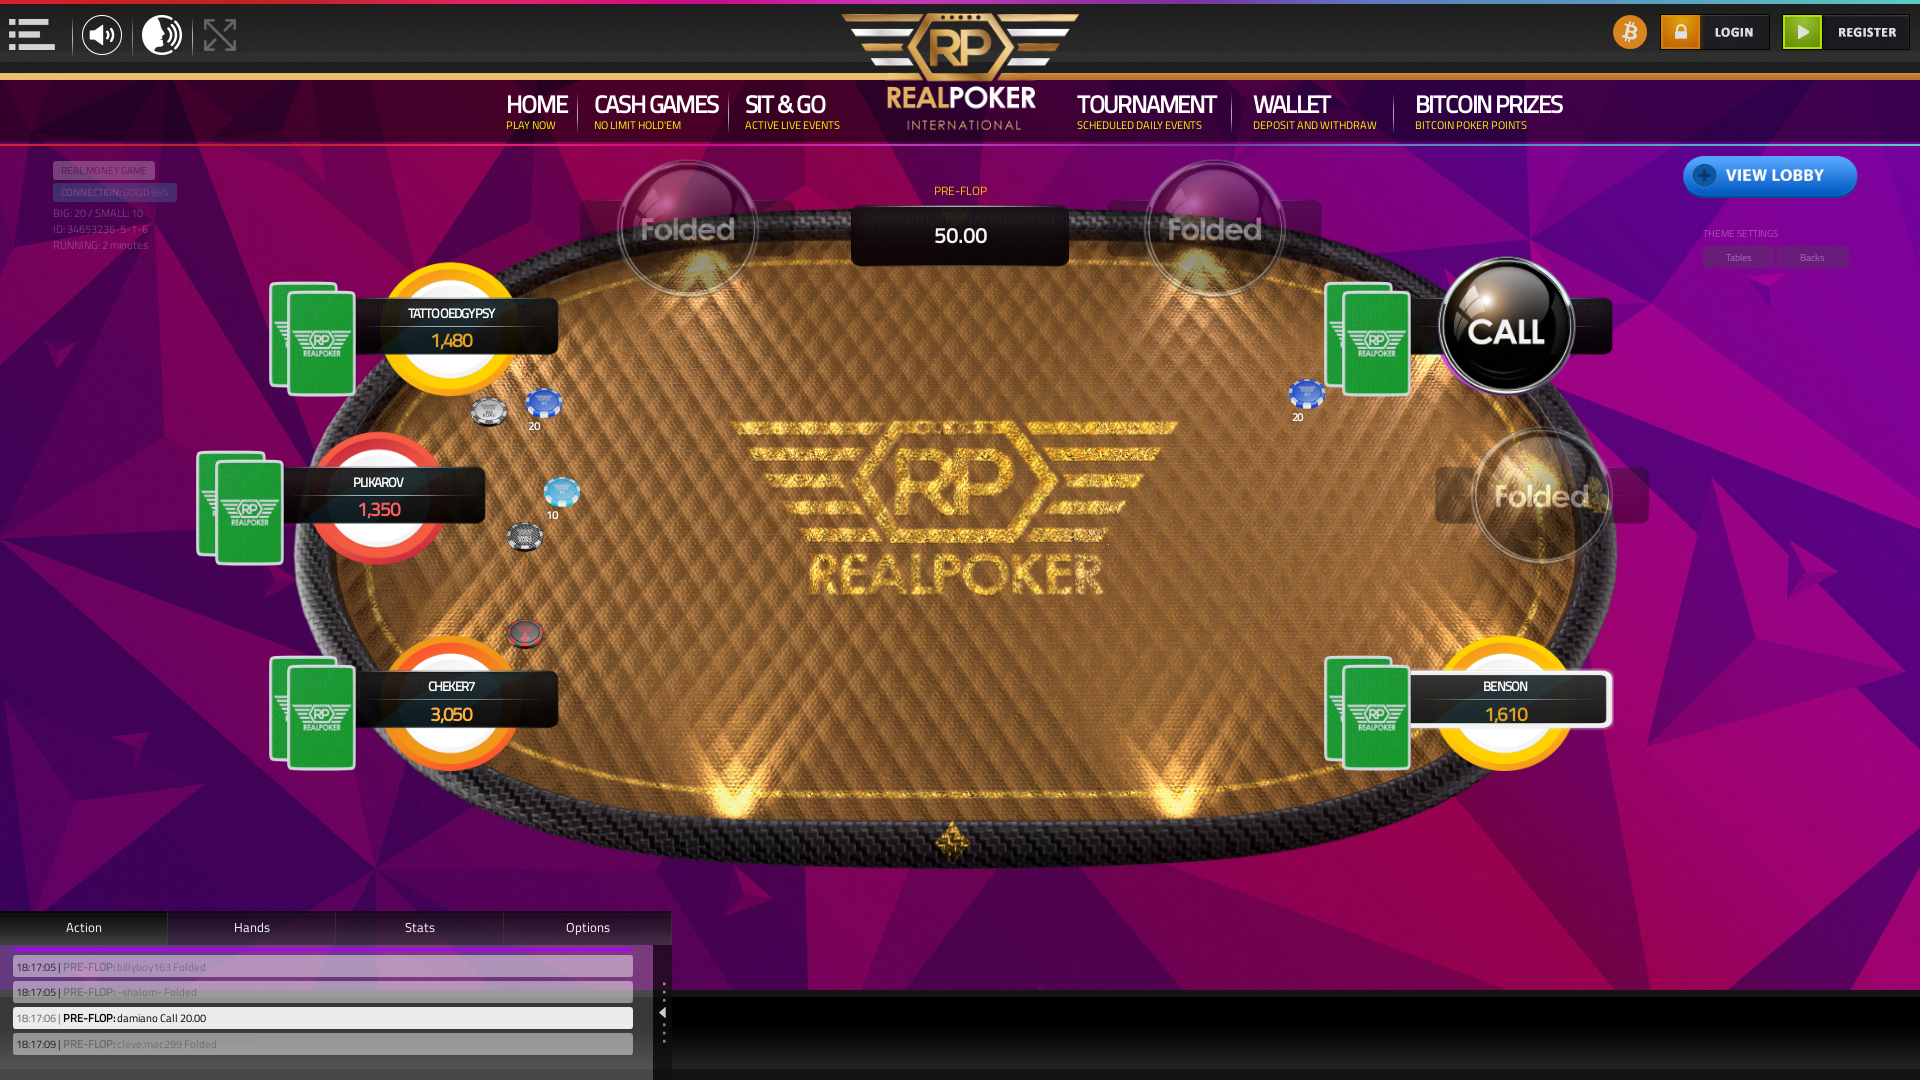 10 player texas holdem table at real poker with the table id 34653236